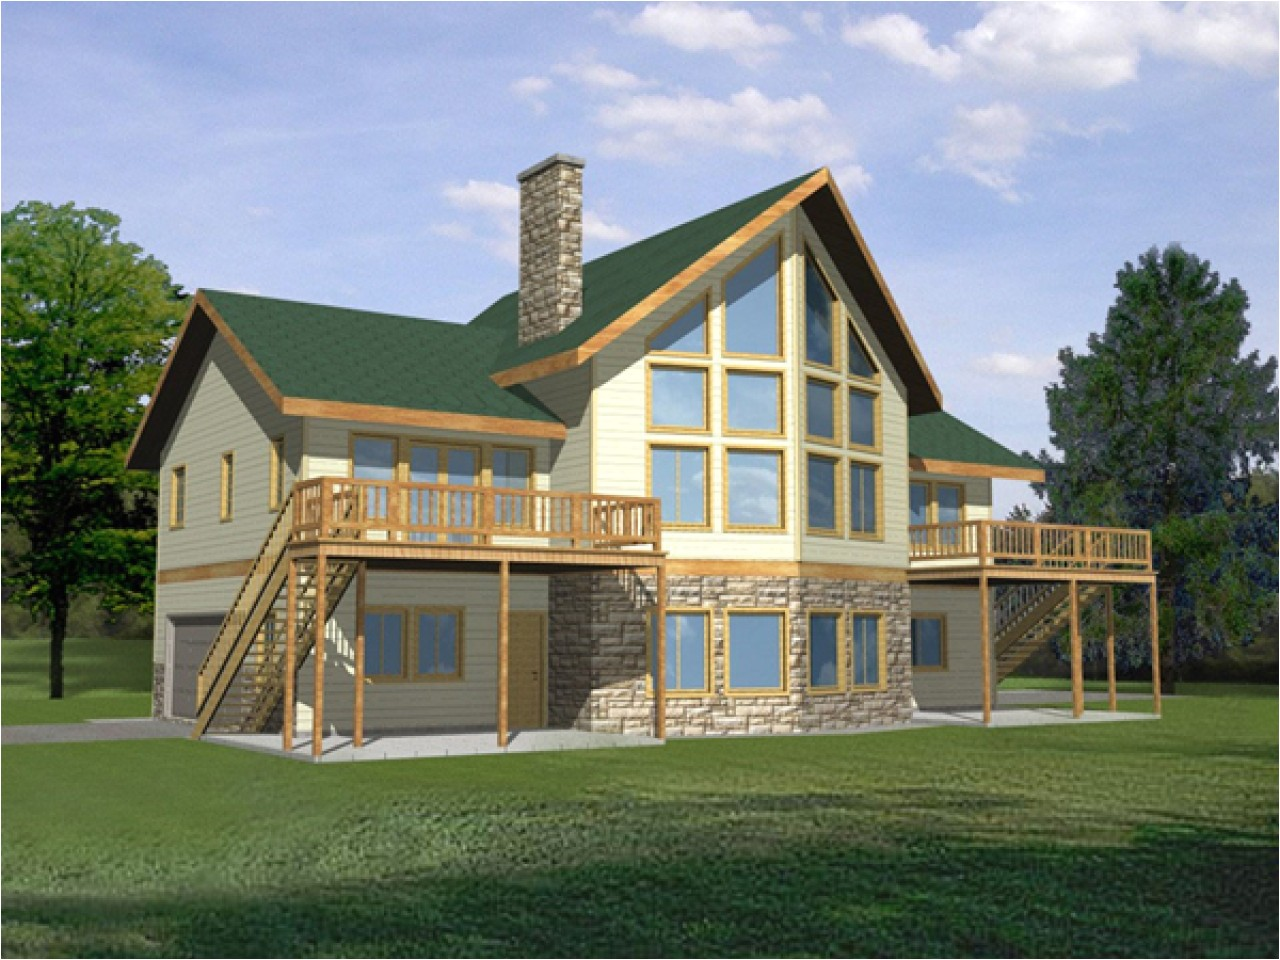 0a58daab89890fe4 waterfront house with narrow lot floor plan waterfront homes house plans